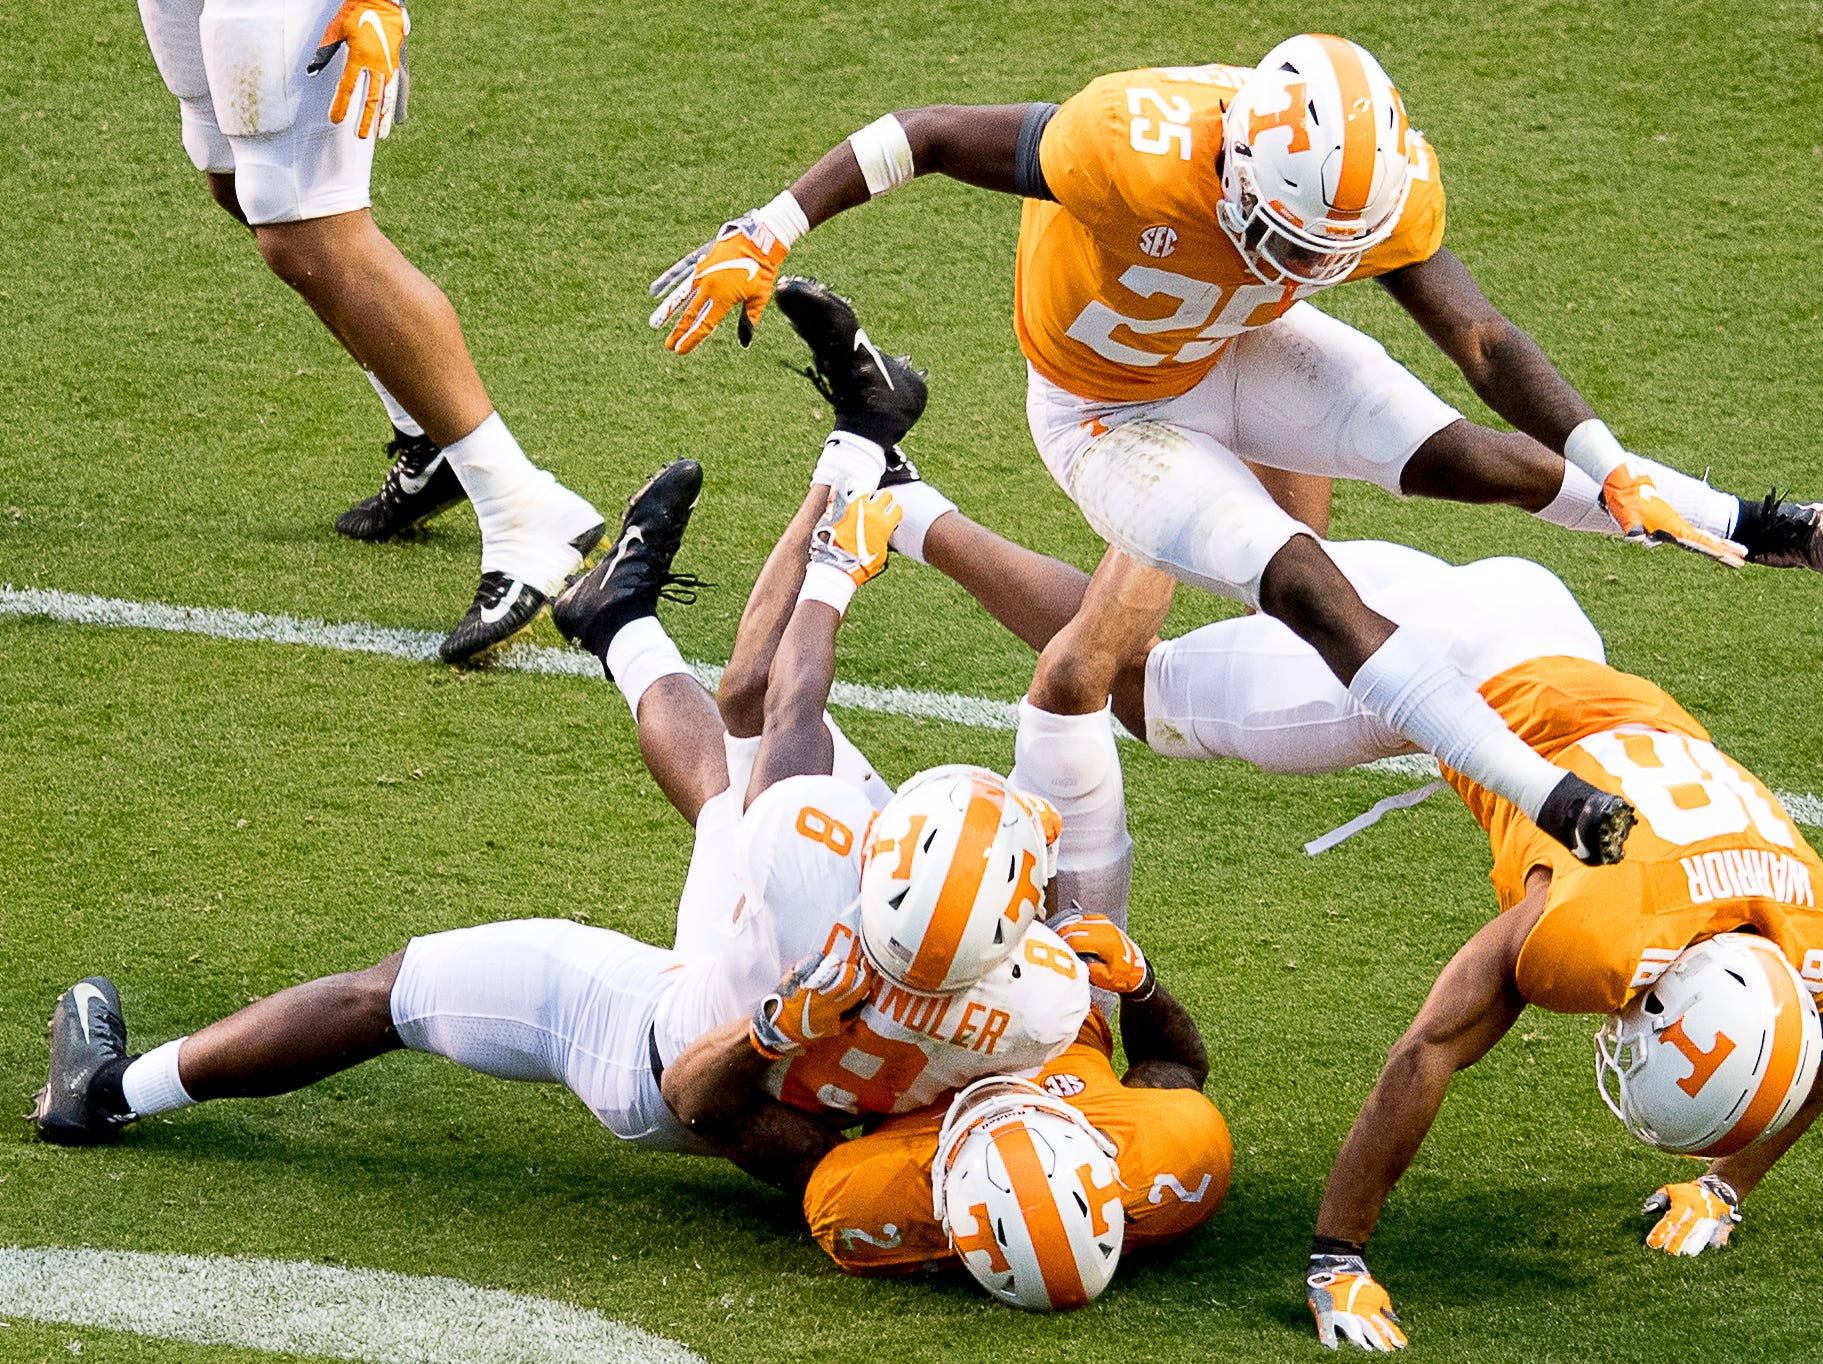 Tennessee defensive back Trevon Flowers (25) leaps over Tennessee running back Ty Chandler (8), Tennessee defensive back Alontae Taylor (2) and Tennessee defensive back Nigel Warrior (18) during the Tennessee Spring Game at Neyland Stadium in Knoxville, Tennessee on Saturday, April 13, 2019.